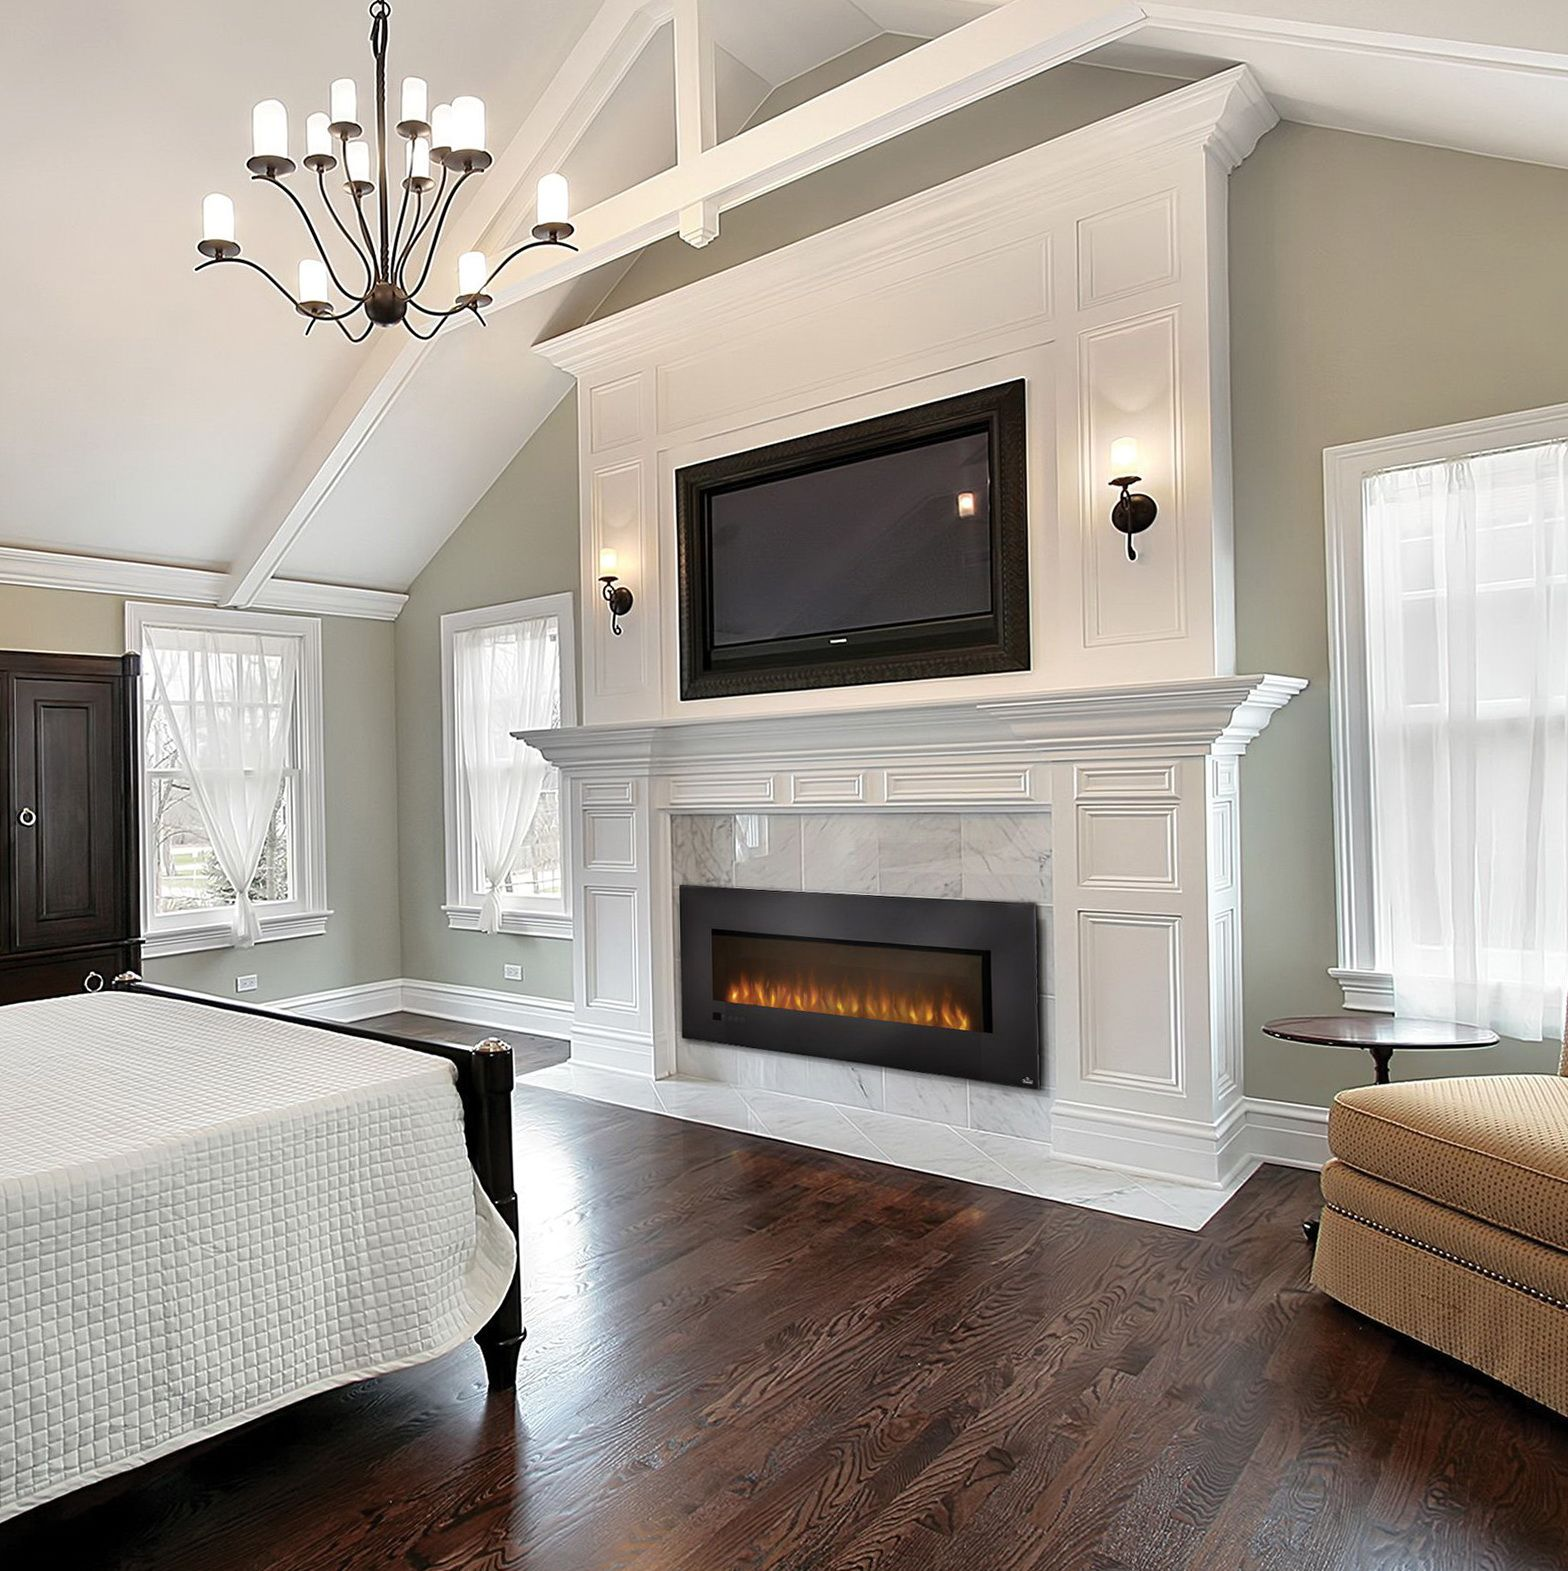 Electric fireplace insert and Fireplace inserts